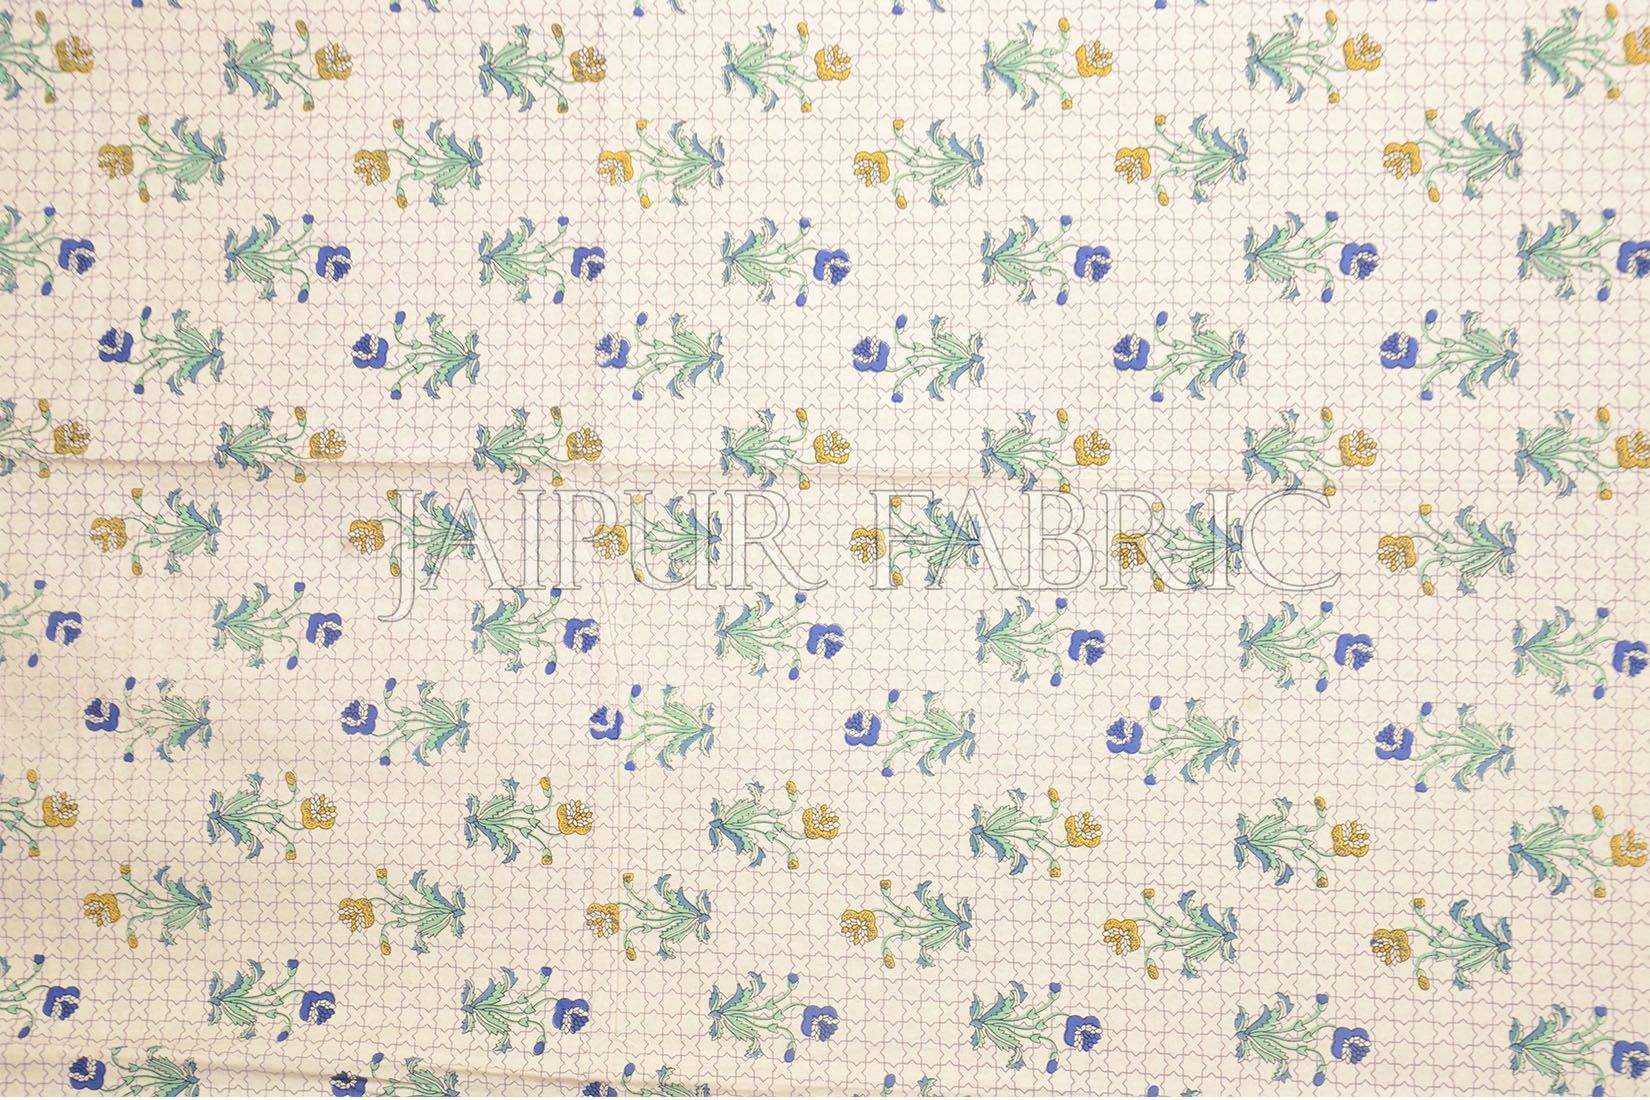 Green Border Trellis Base Floral Printed Cotton Single Bed Sheet